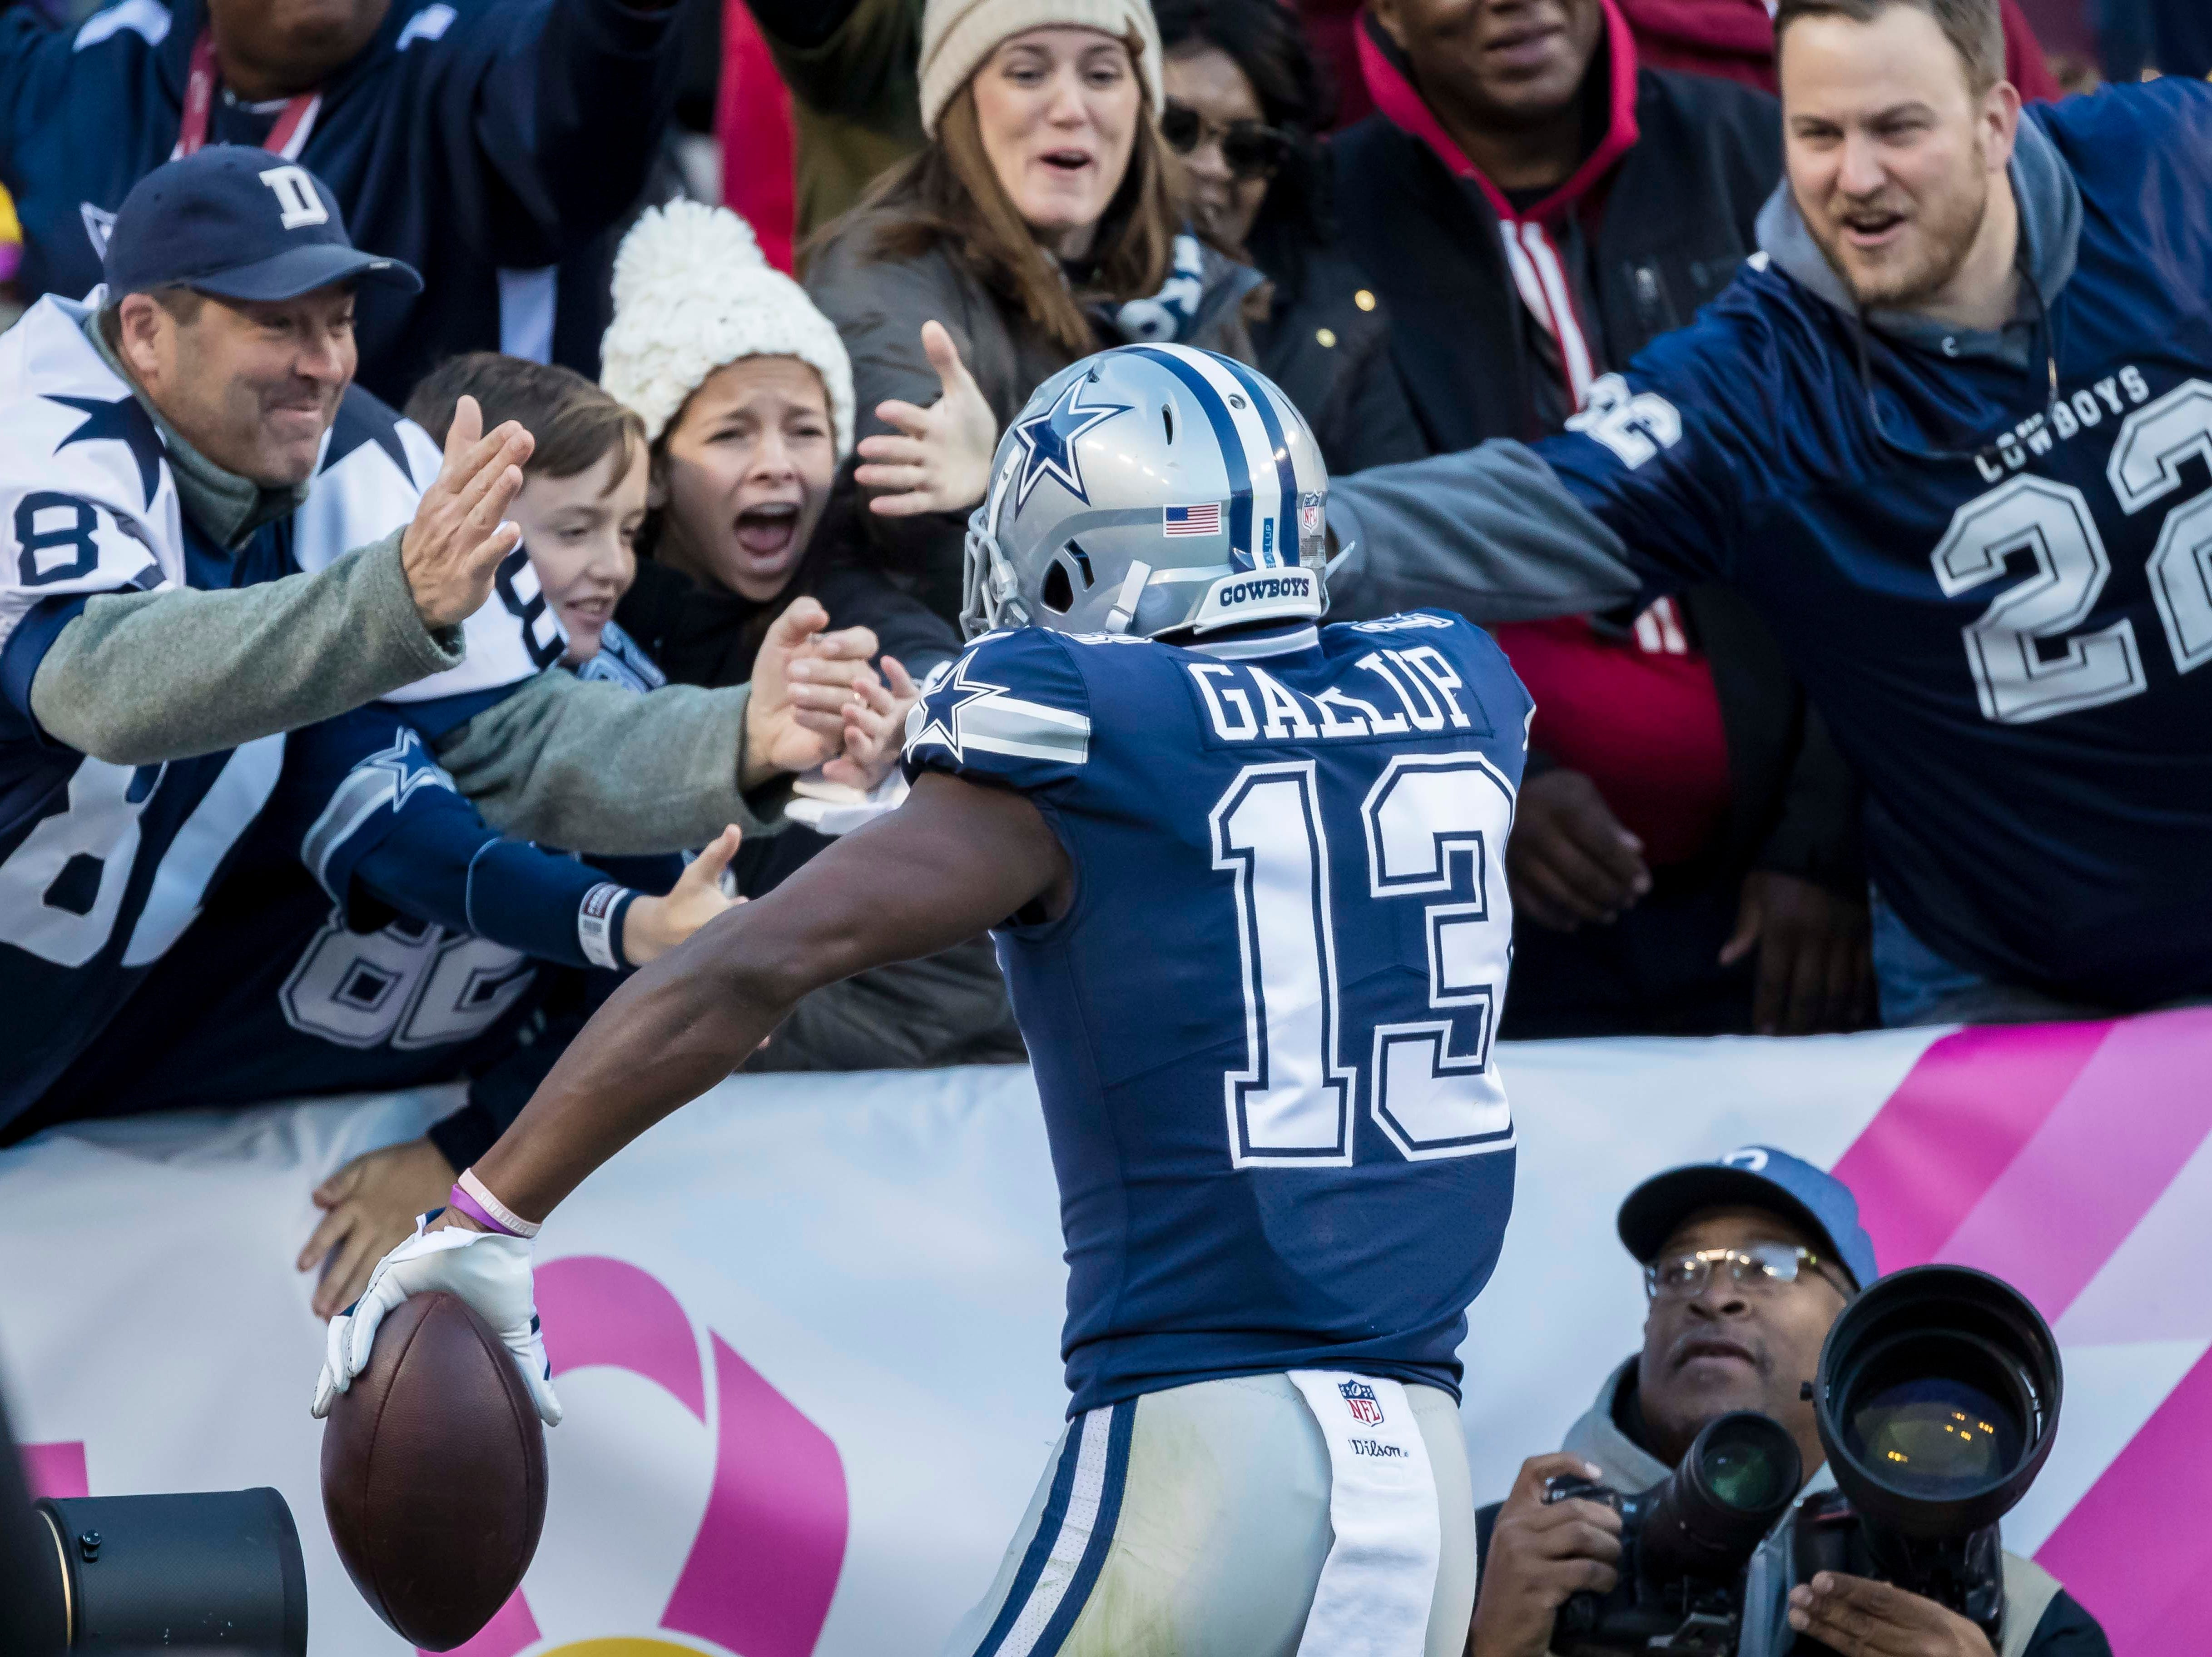 Dallas Cowboys wide receiver Michael Gallup (13) celebrates after scoring a touchdown against the Washington Redskins during the second quarter at FedEx Field.